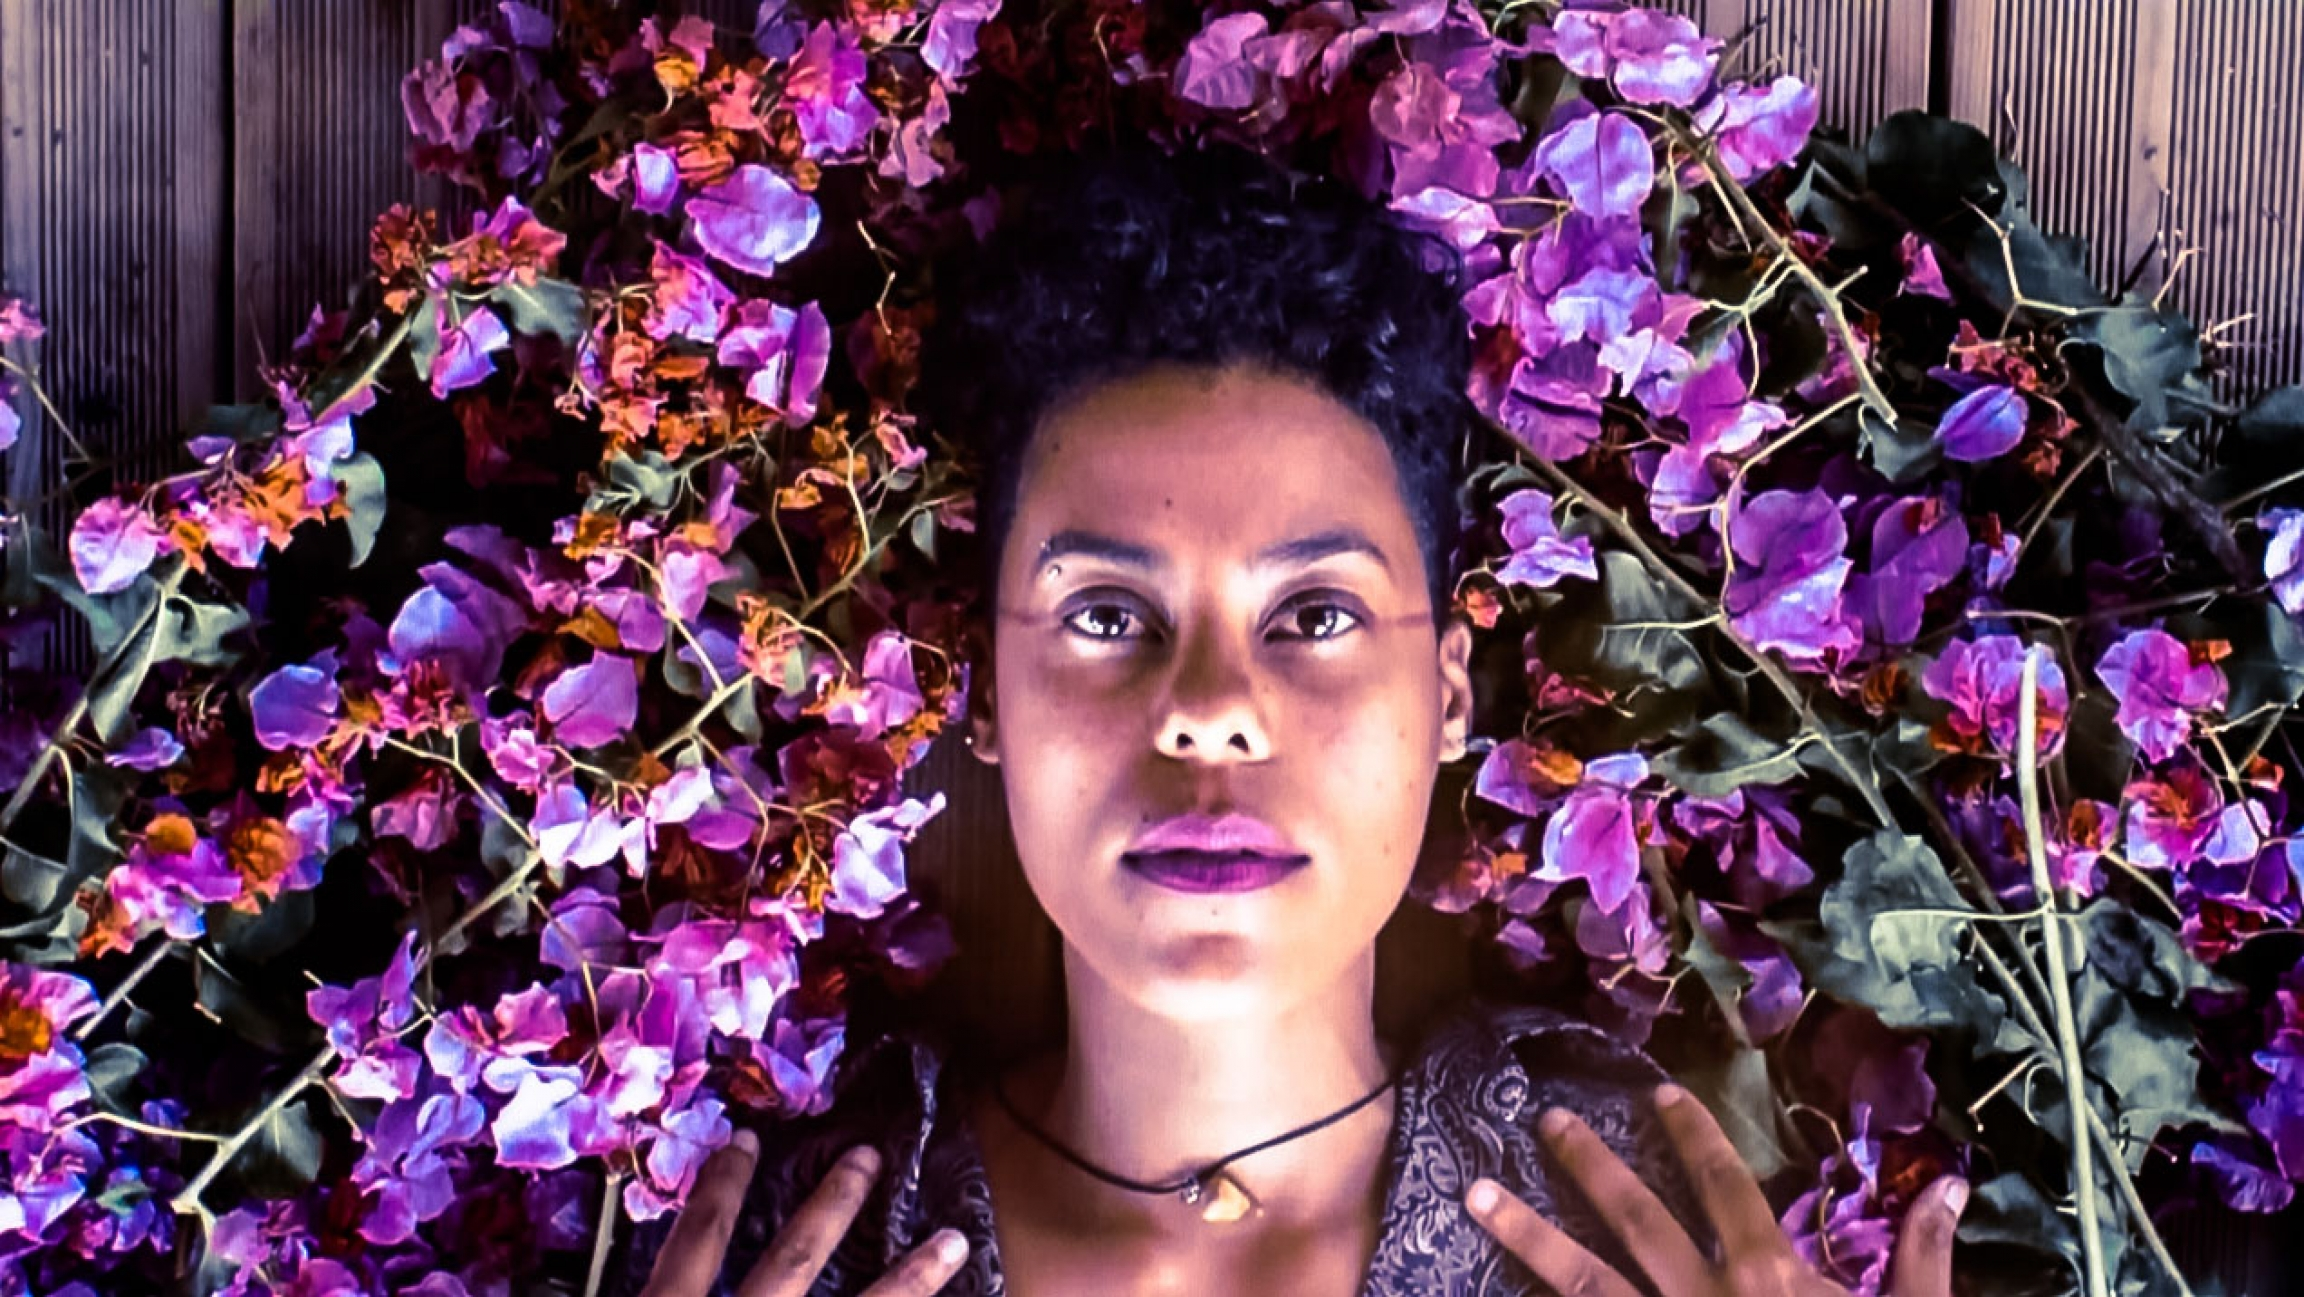 Reunion Island artist Dilo surrounded by pink and magenta flowers around her head.